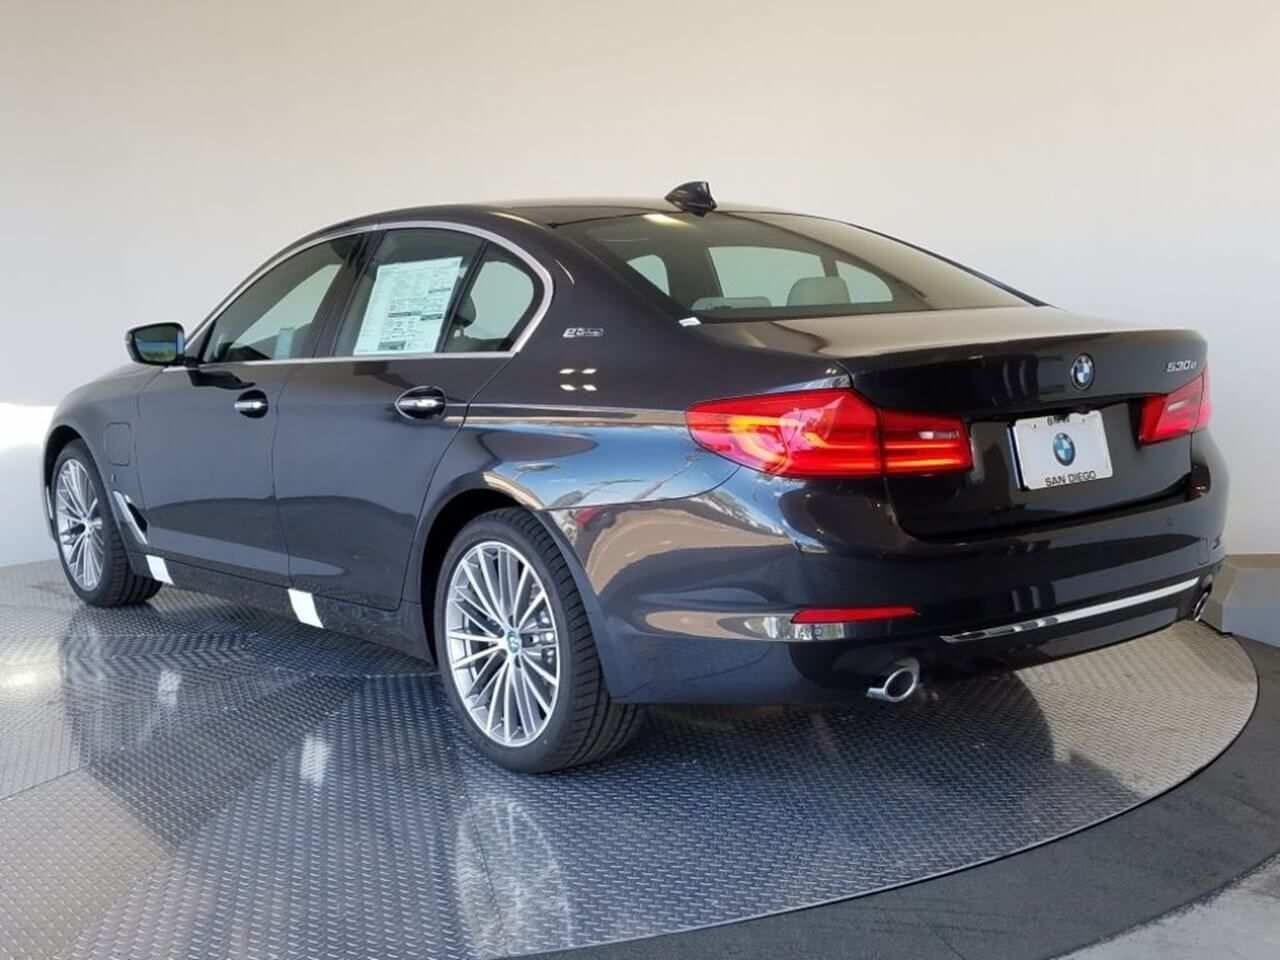 47 All New 2020 BMW 550I Price with 2020 BMW 550I